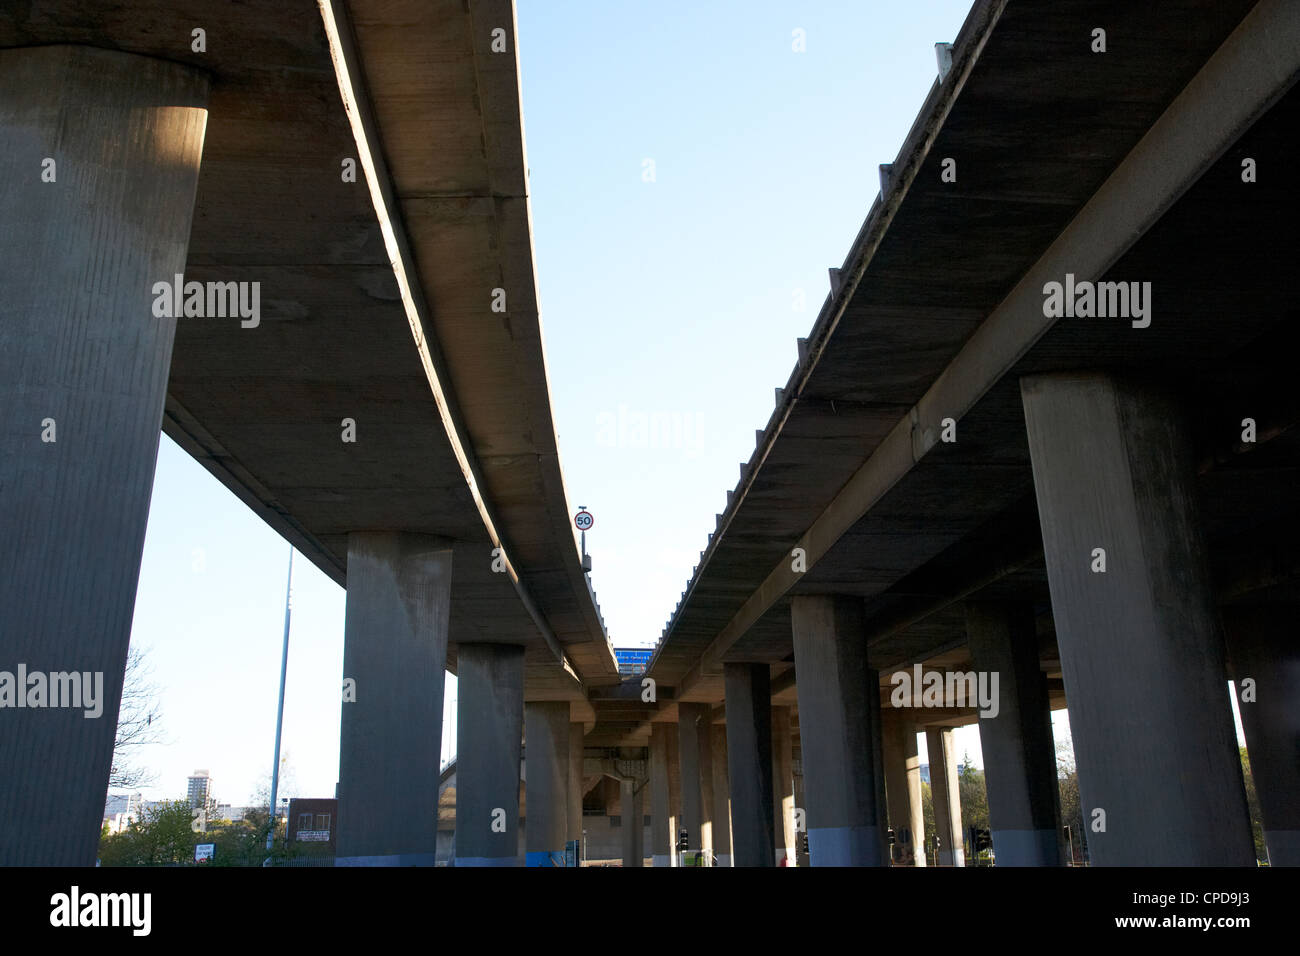 underneath the m8 elevated motorway overpass in central Glasgow Scotland UK - Stock Image